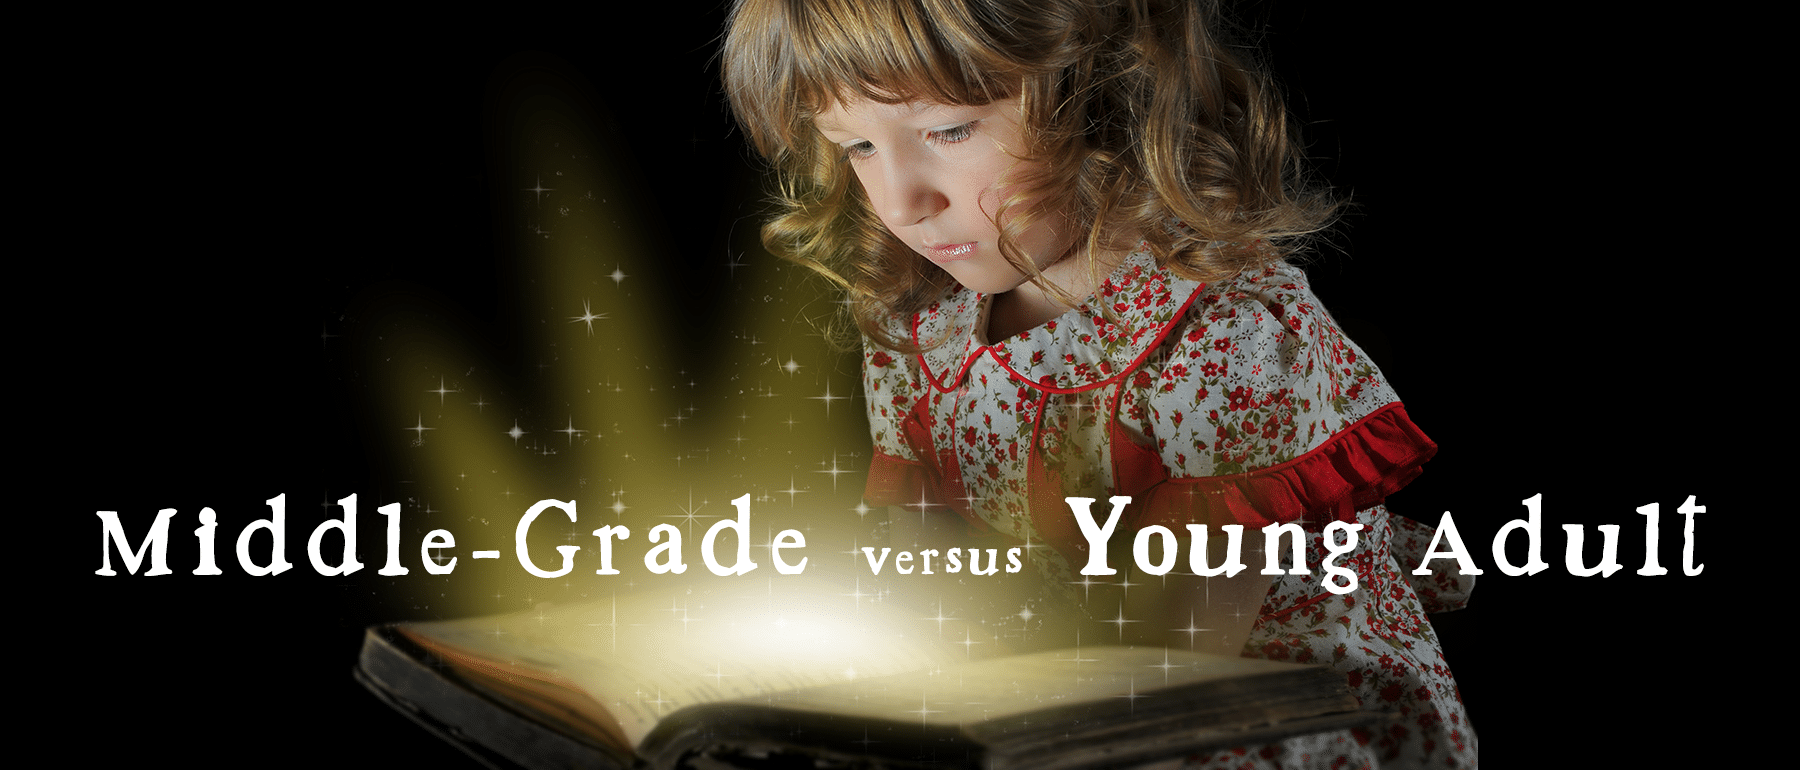 Middle-Grade vs Young Adult